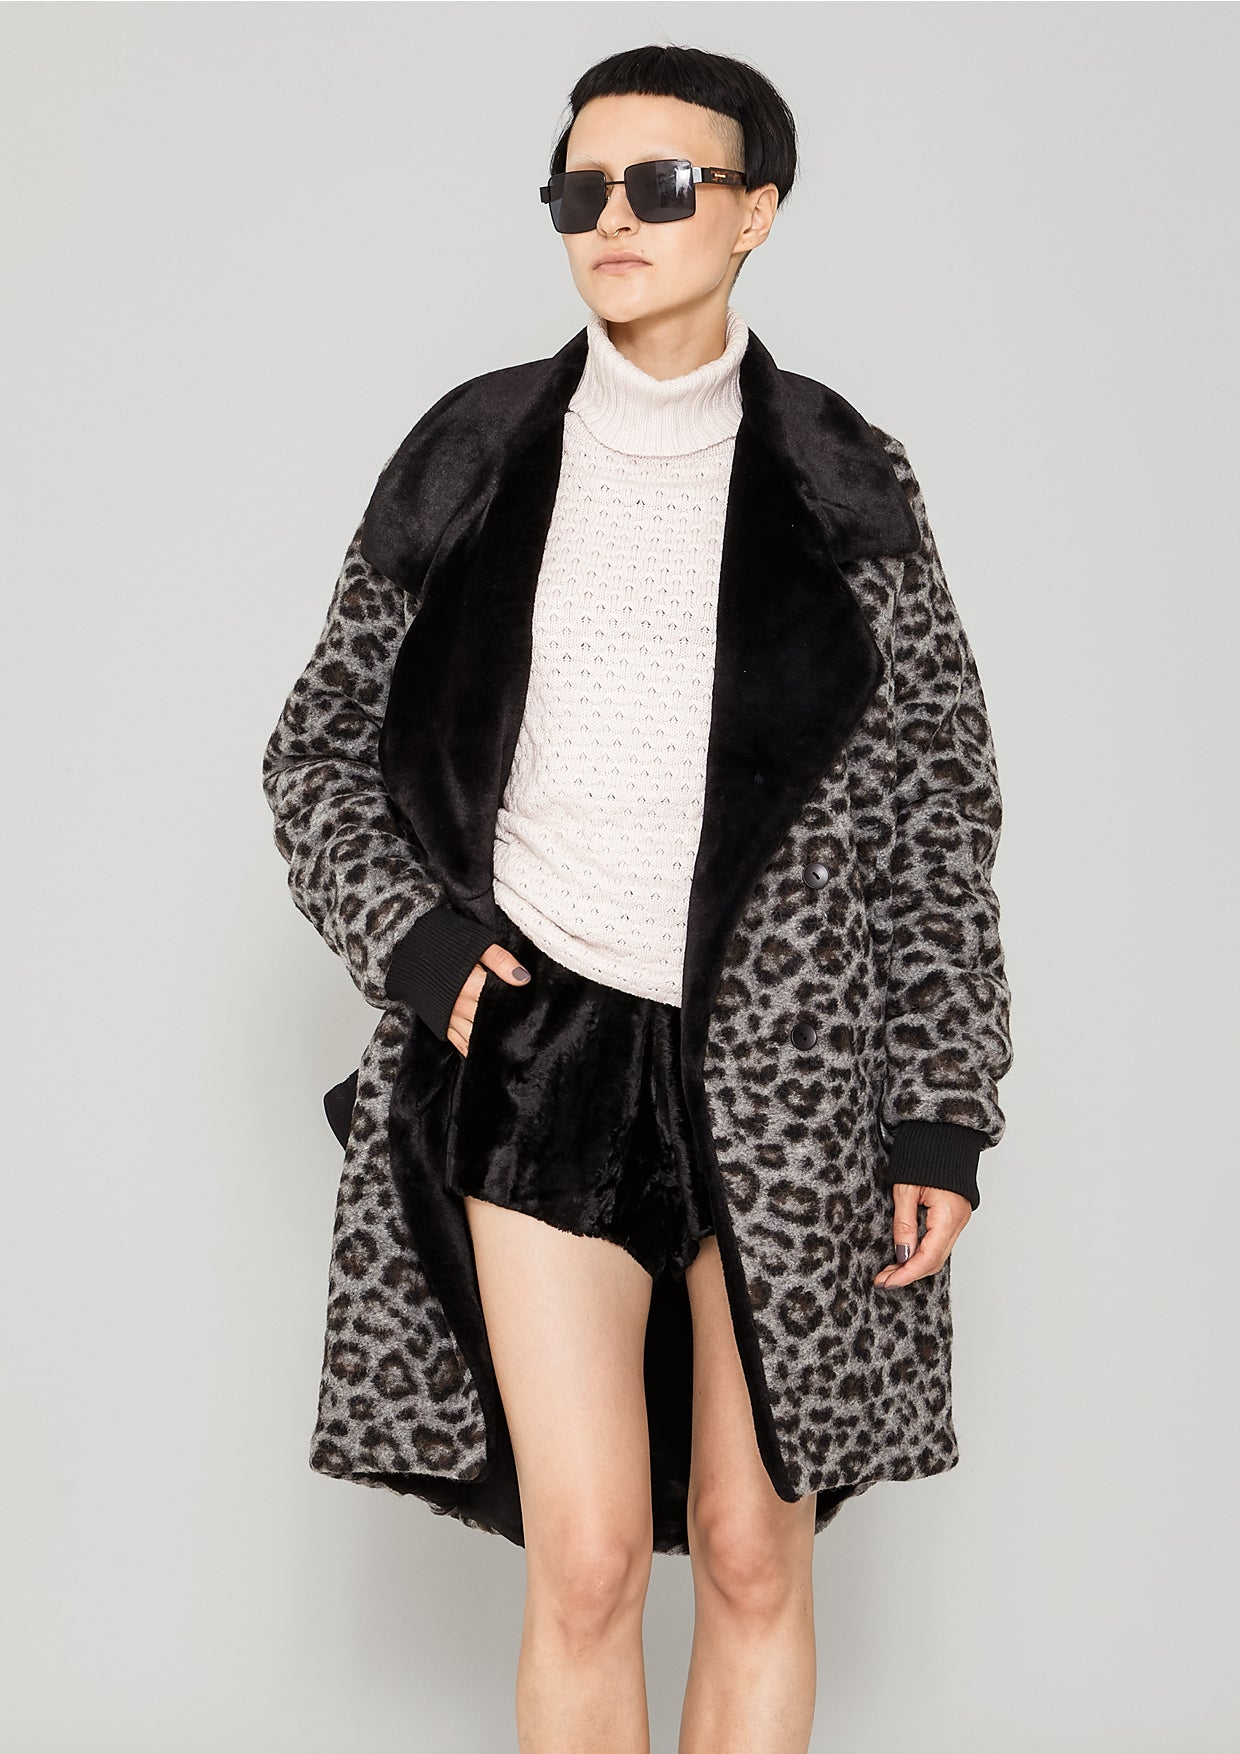 decfc98547 COAT FUR LINING - WOOL COATING animal print